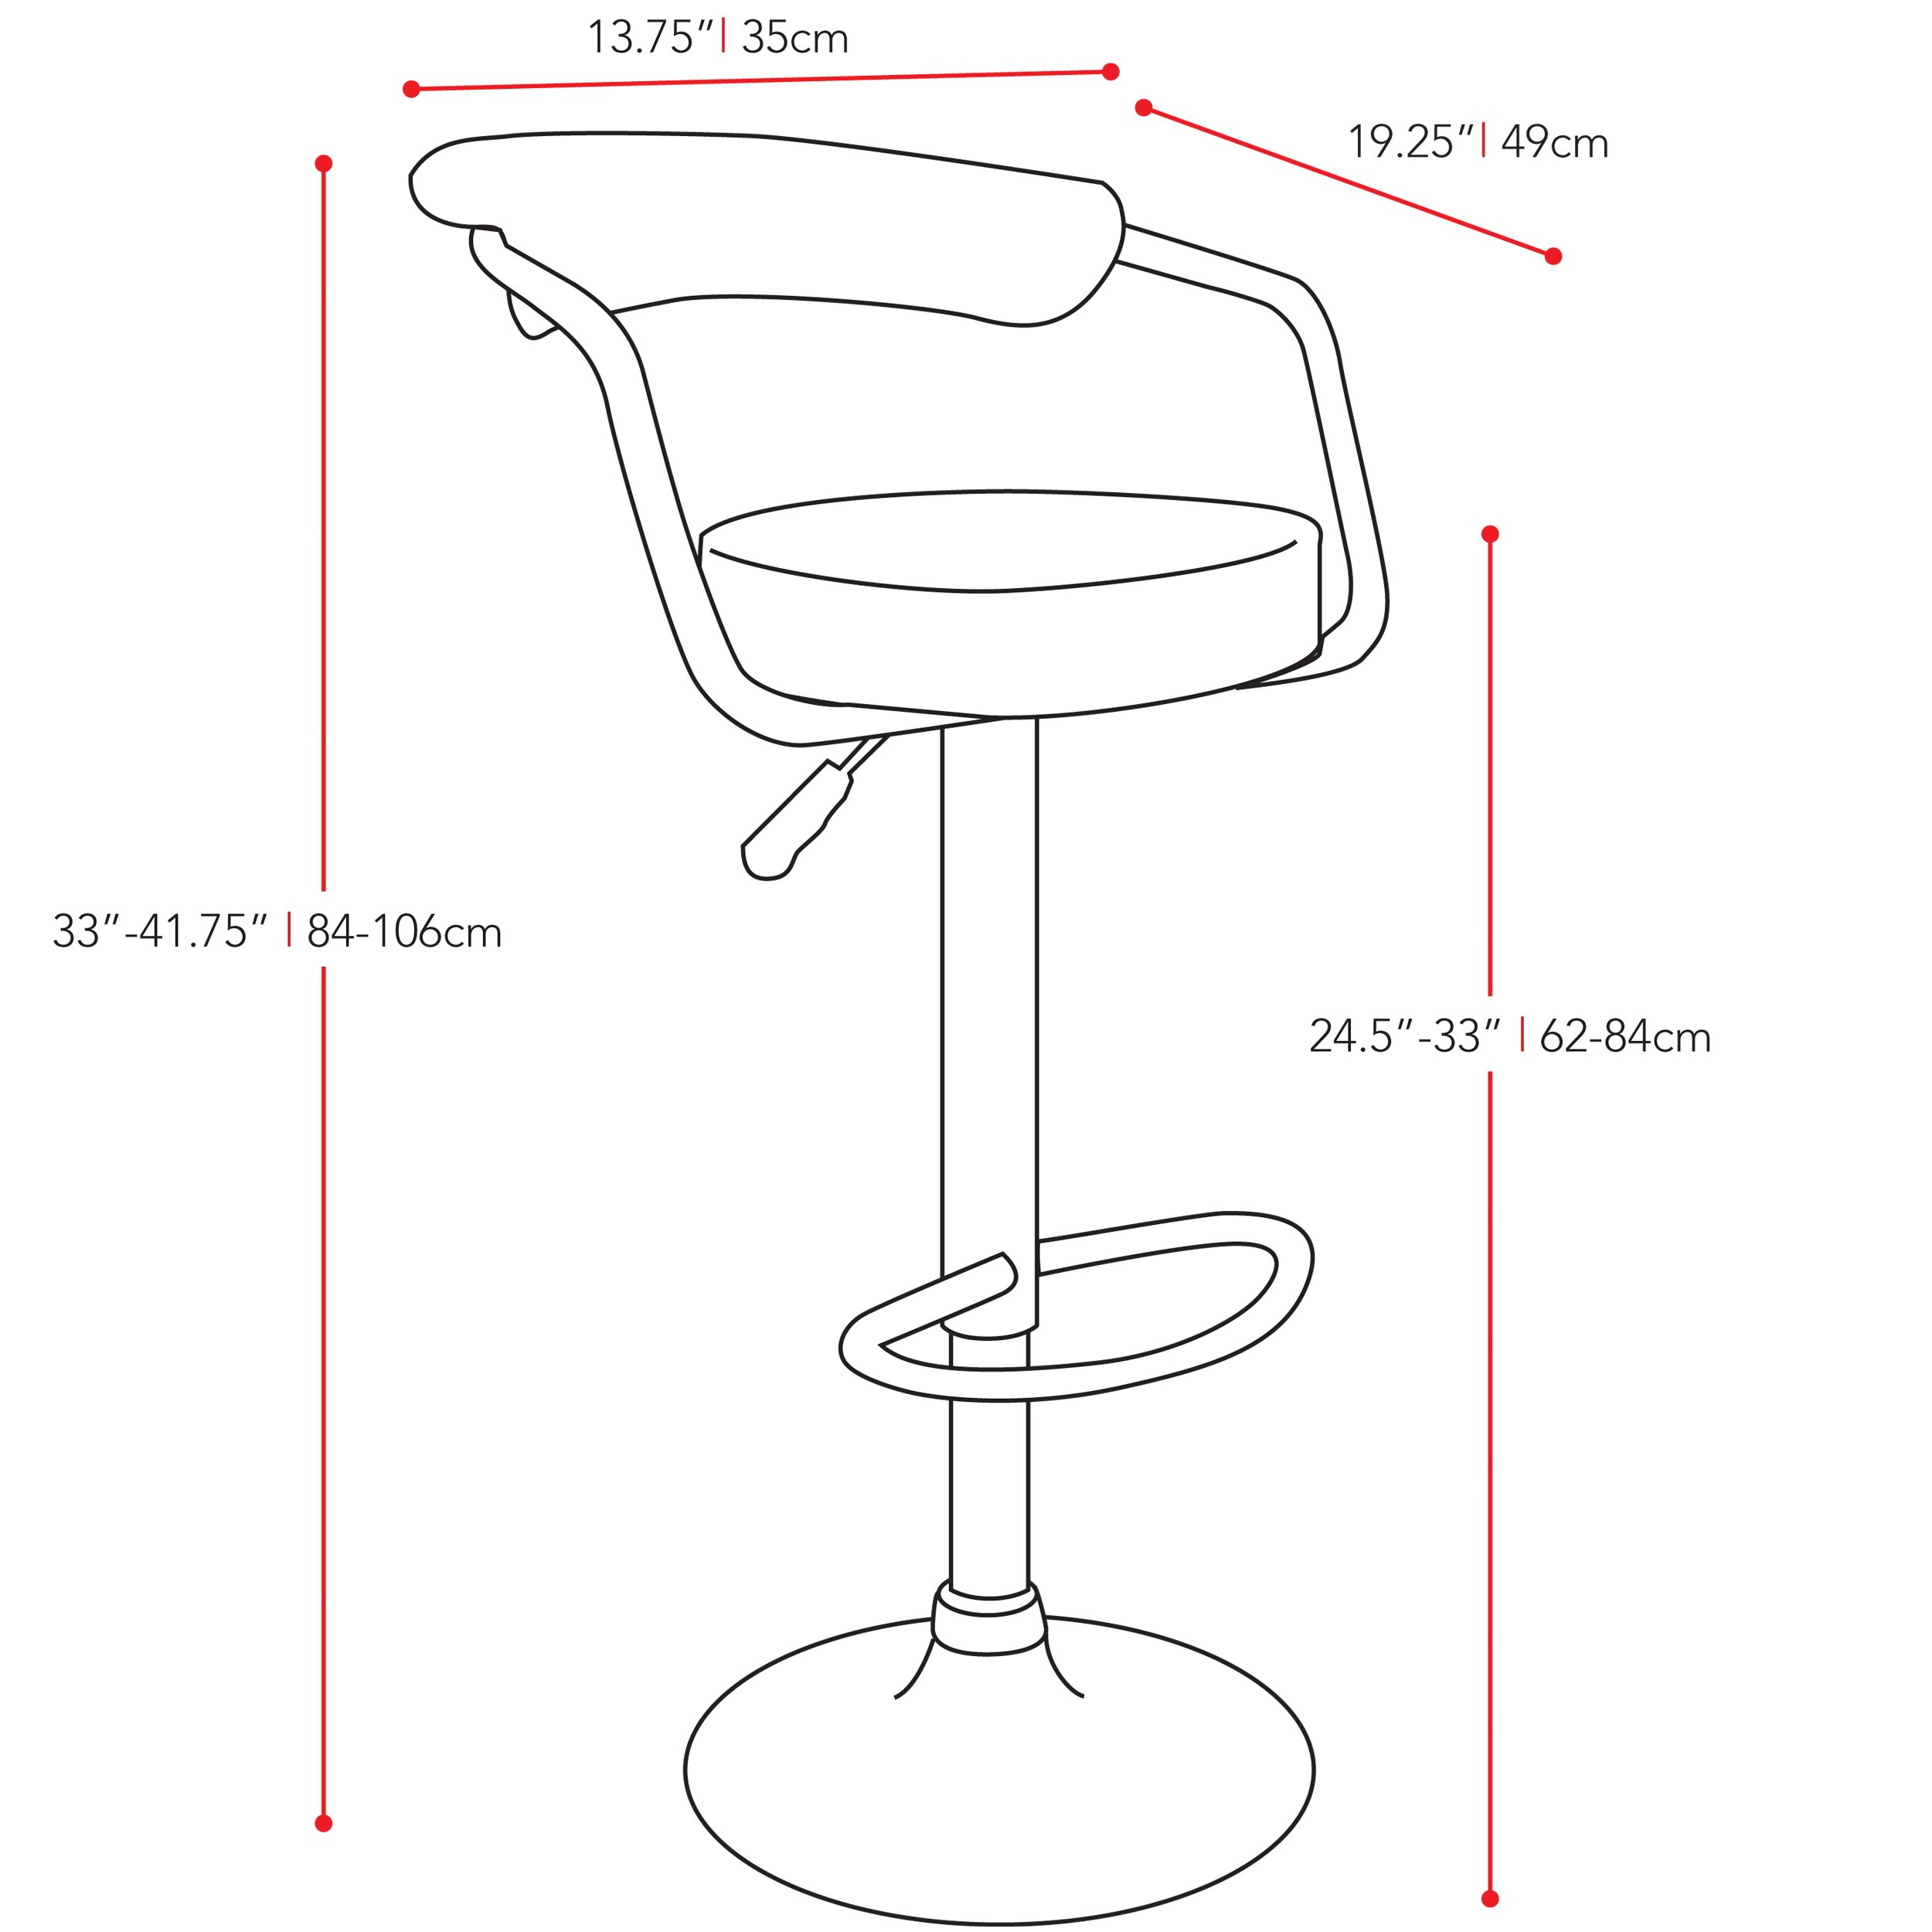 dCOR design CorLiving Adjustable Height Swivel Bar Stool  : dCOR design CorLiving Adjustable Height Swivel Bar Stool XSN1328 from www.wayfair.com size 2500 x 2500 jpeg 255kB